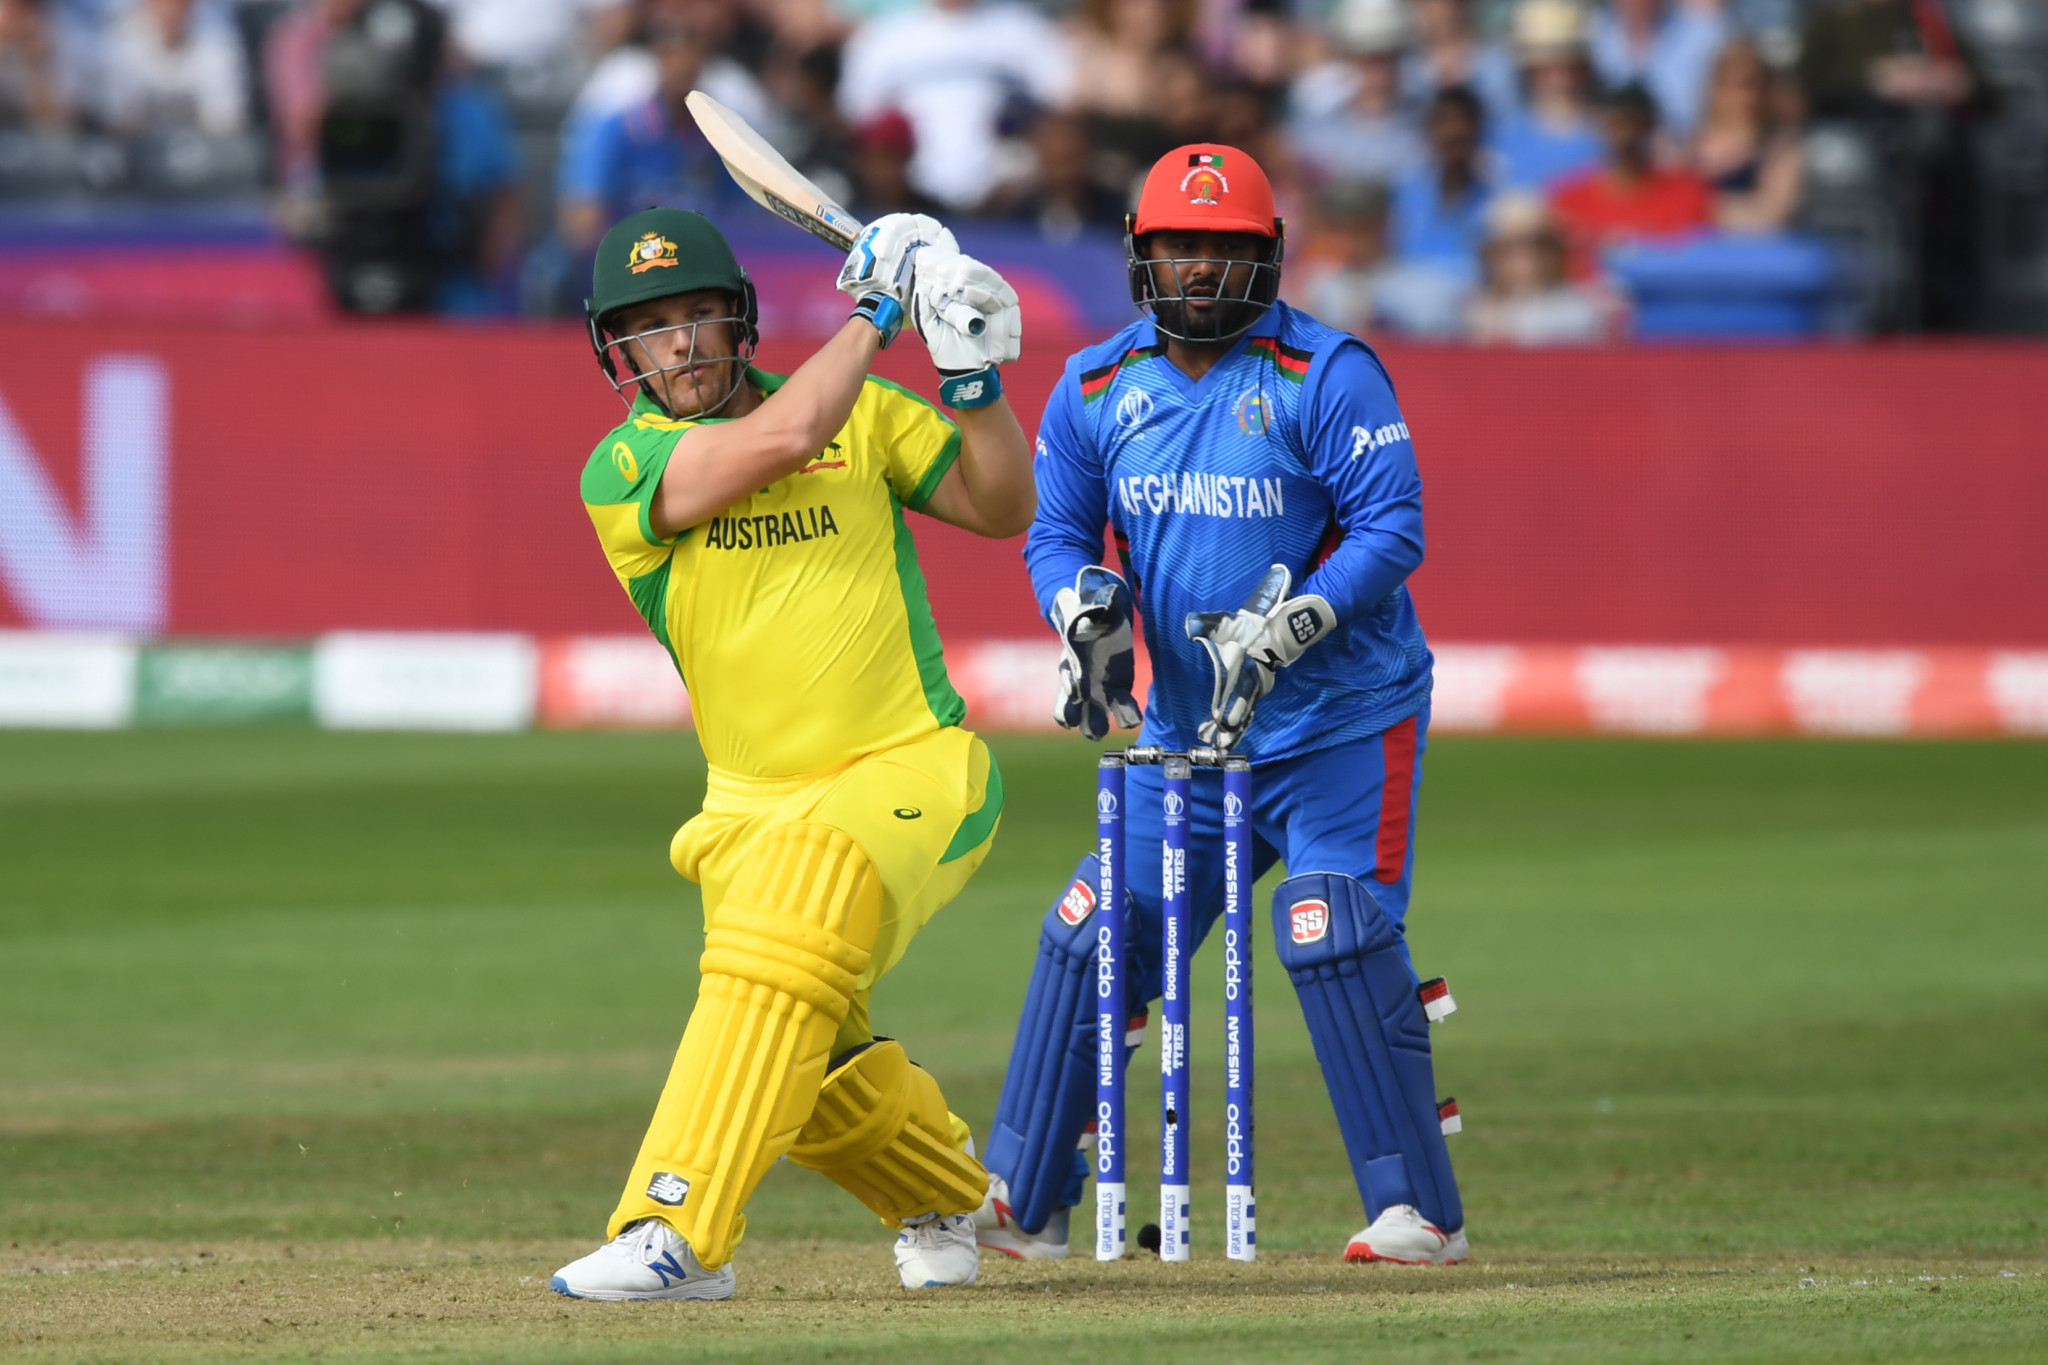 Australia and New Zealand begin Cricket World Cup campaigns with comfortable wins